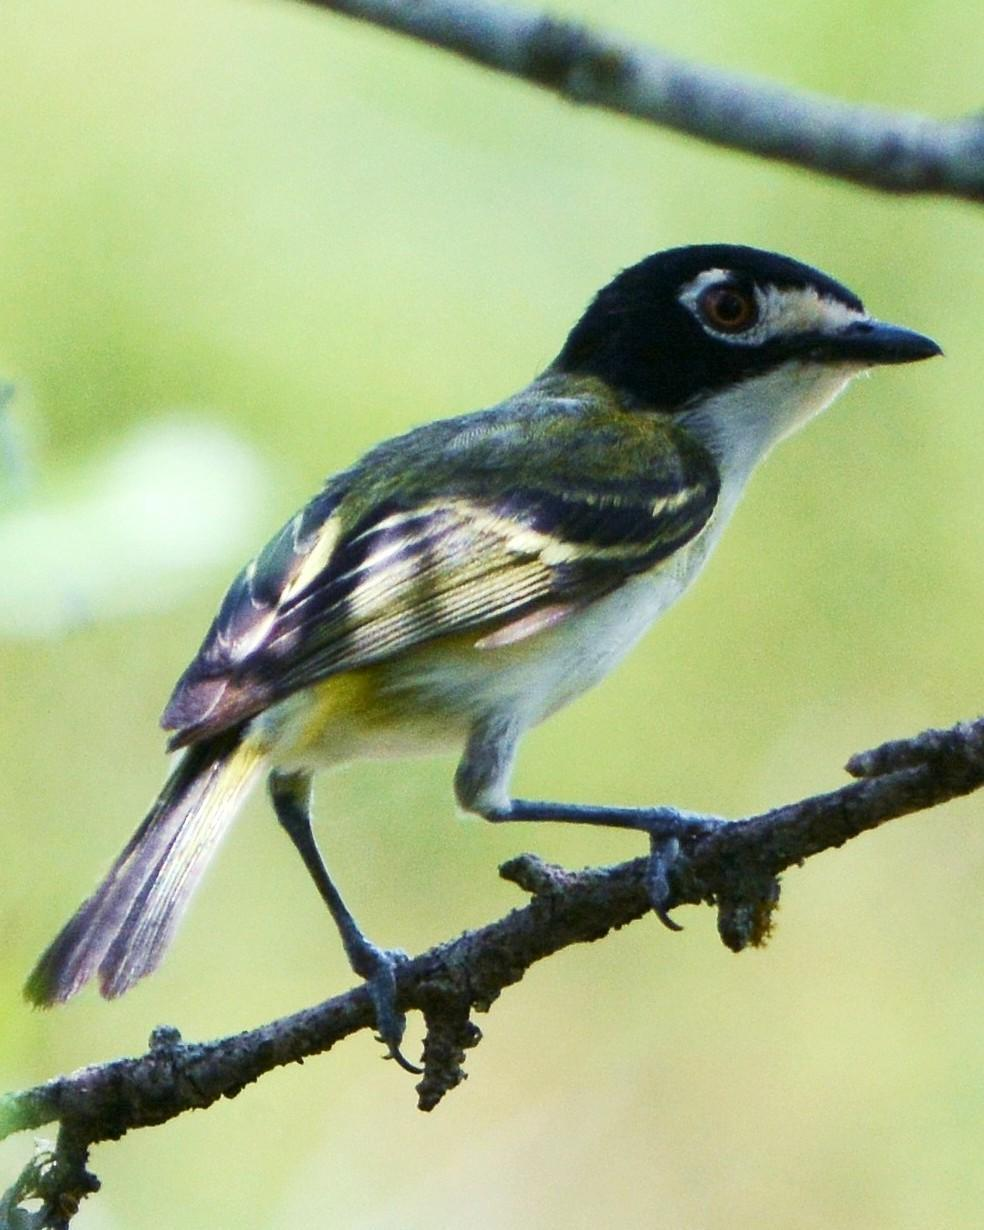 Black-capped Vireo Photo by David Hollie